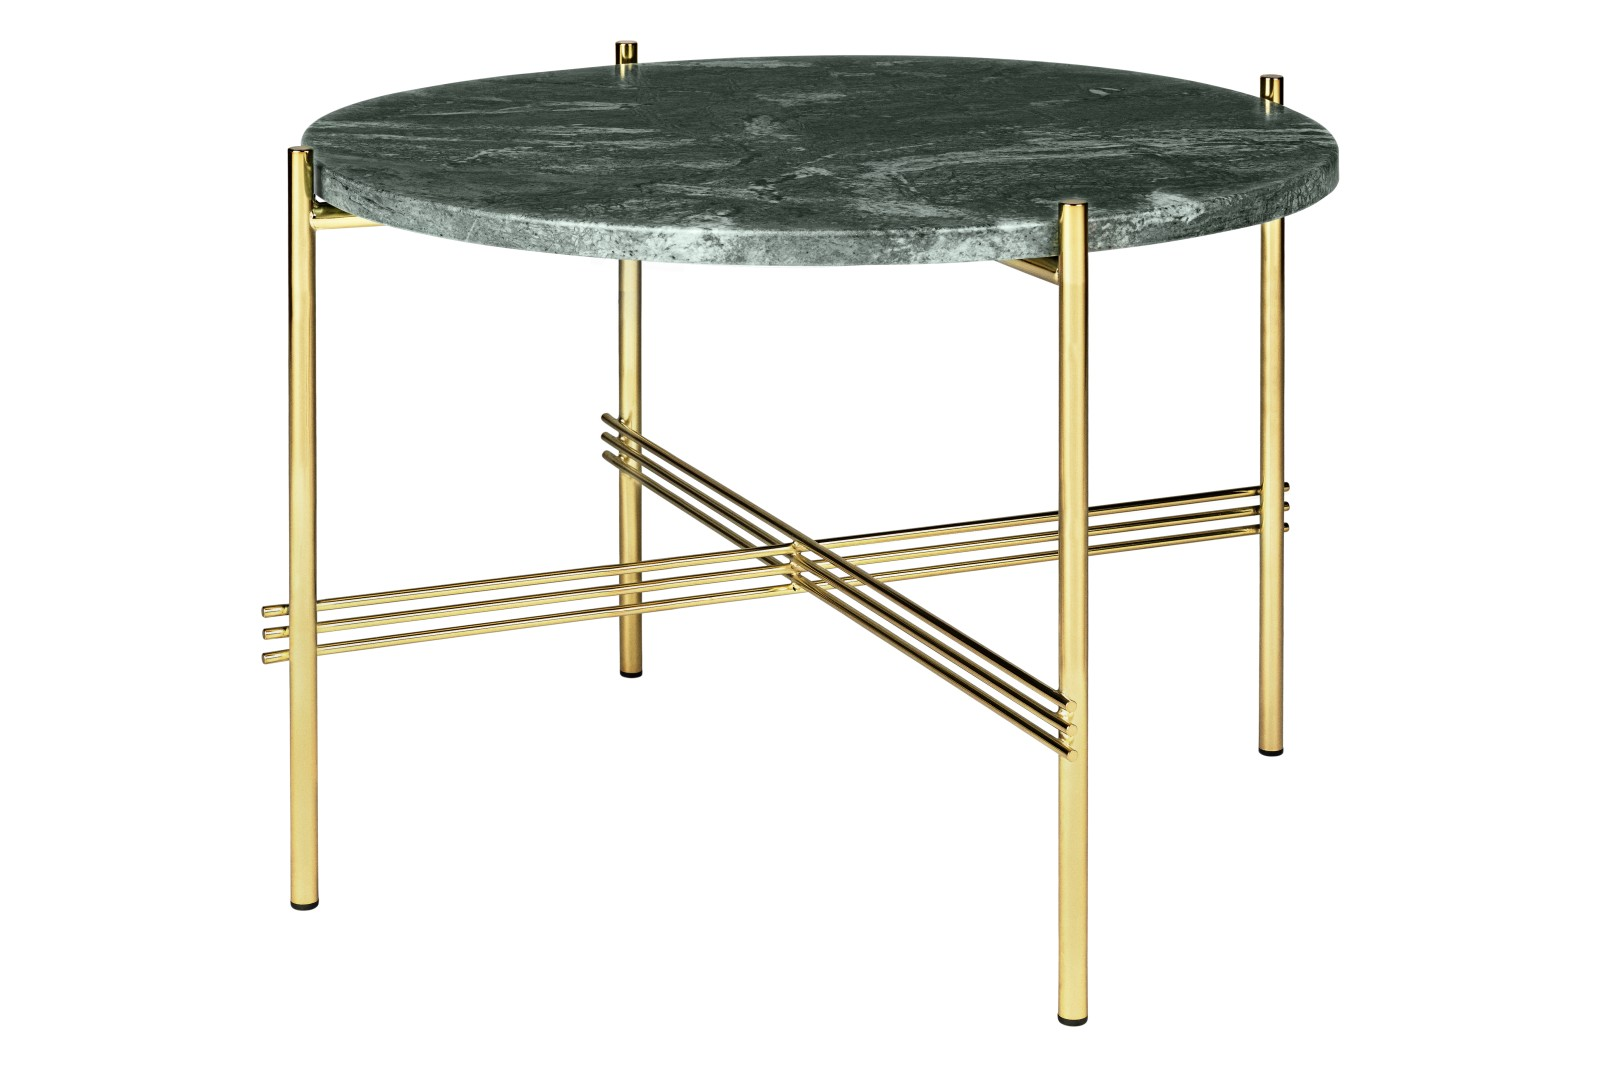 TS Round Coffee Table with Marble Top in Black Frame Gubi Marble Verde Guatemala, Gubi Metal Brass,